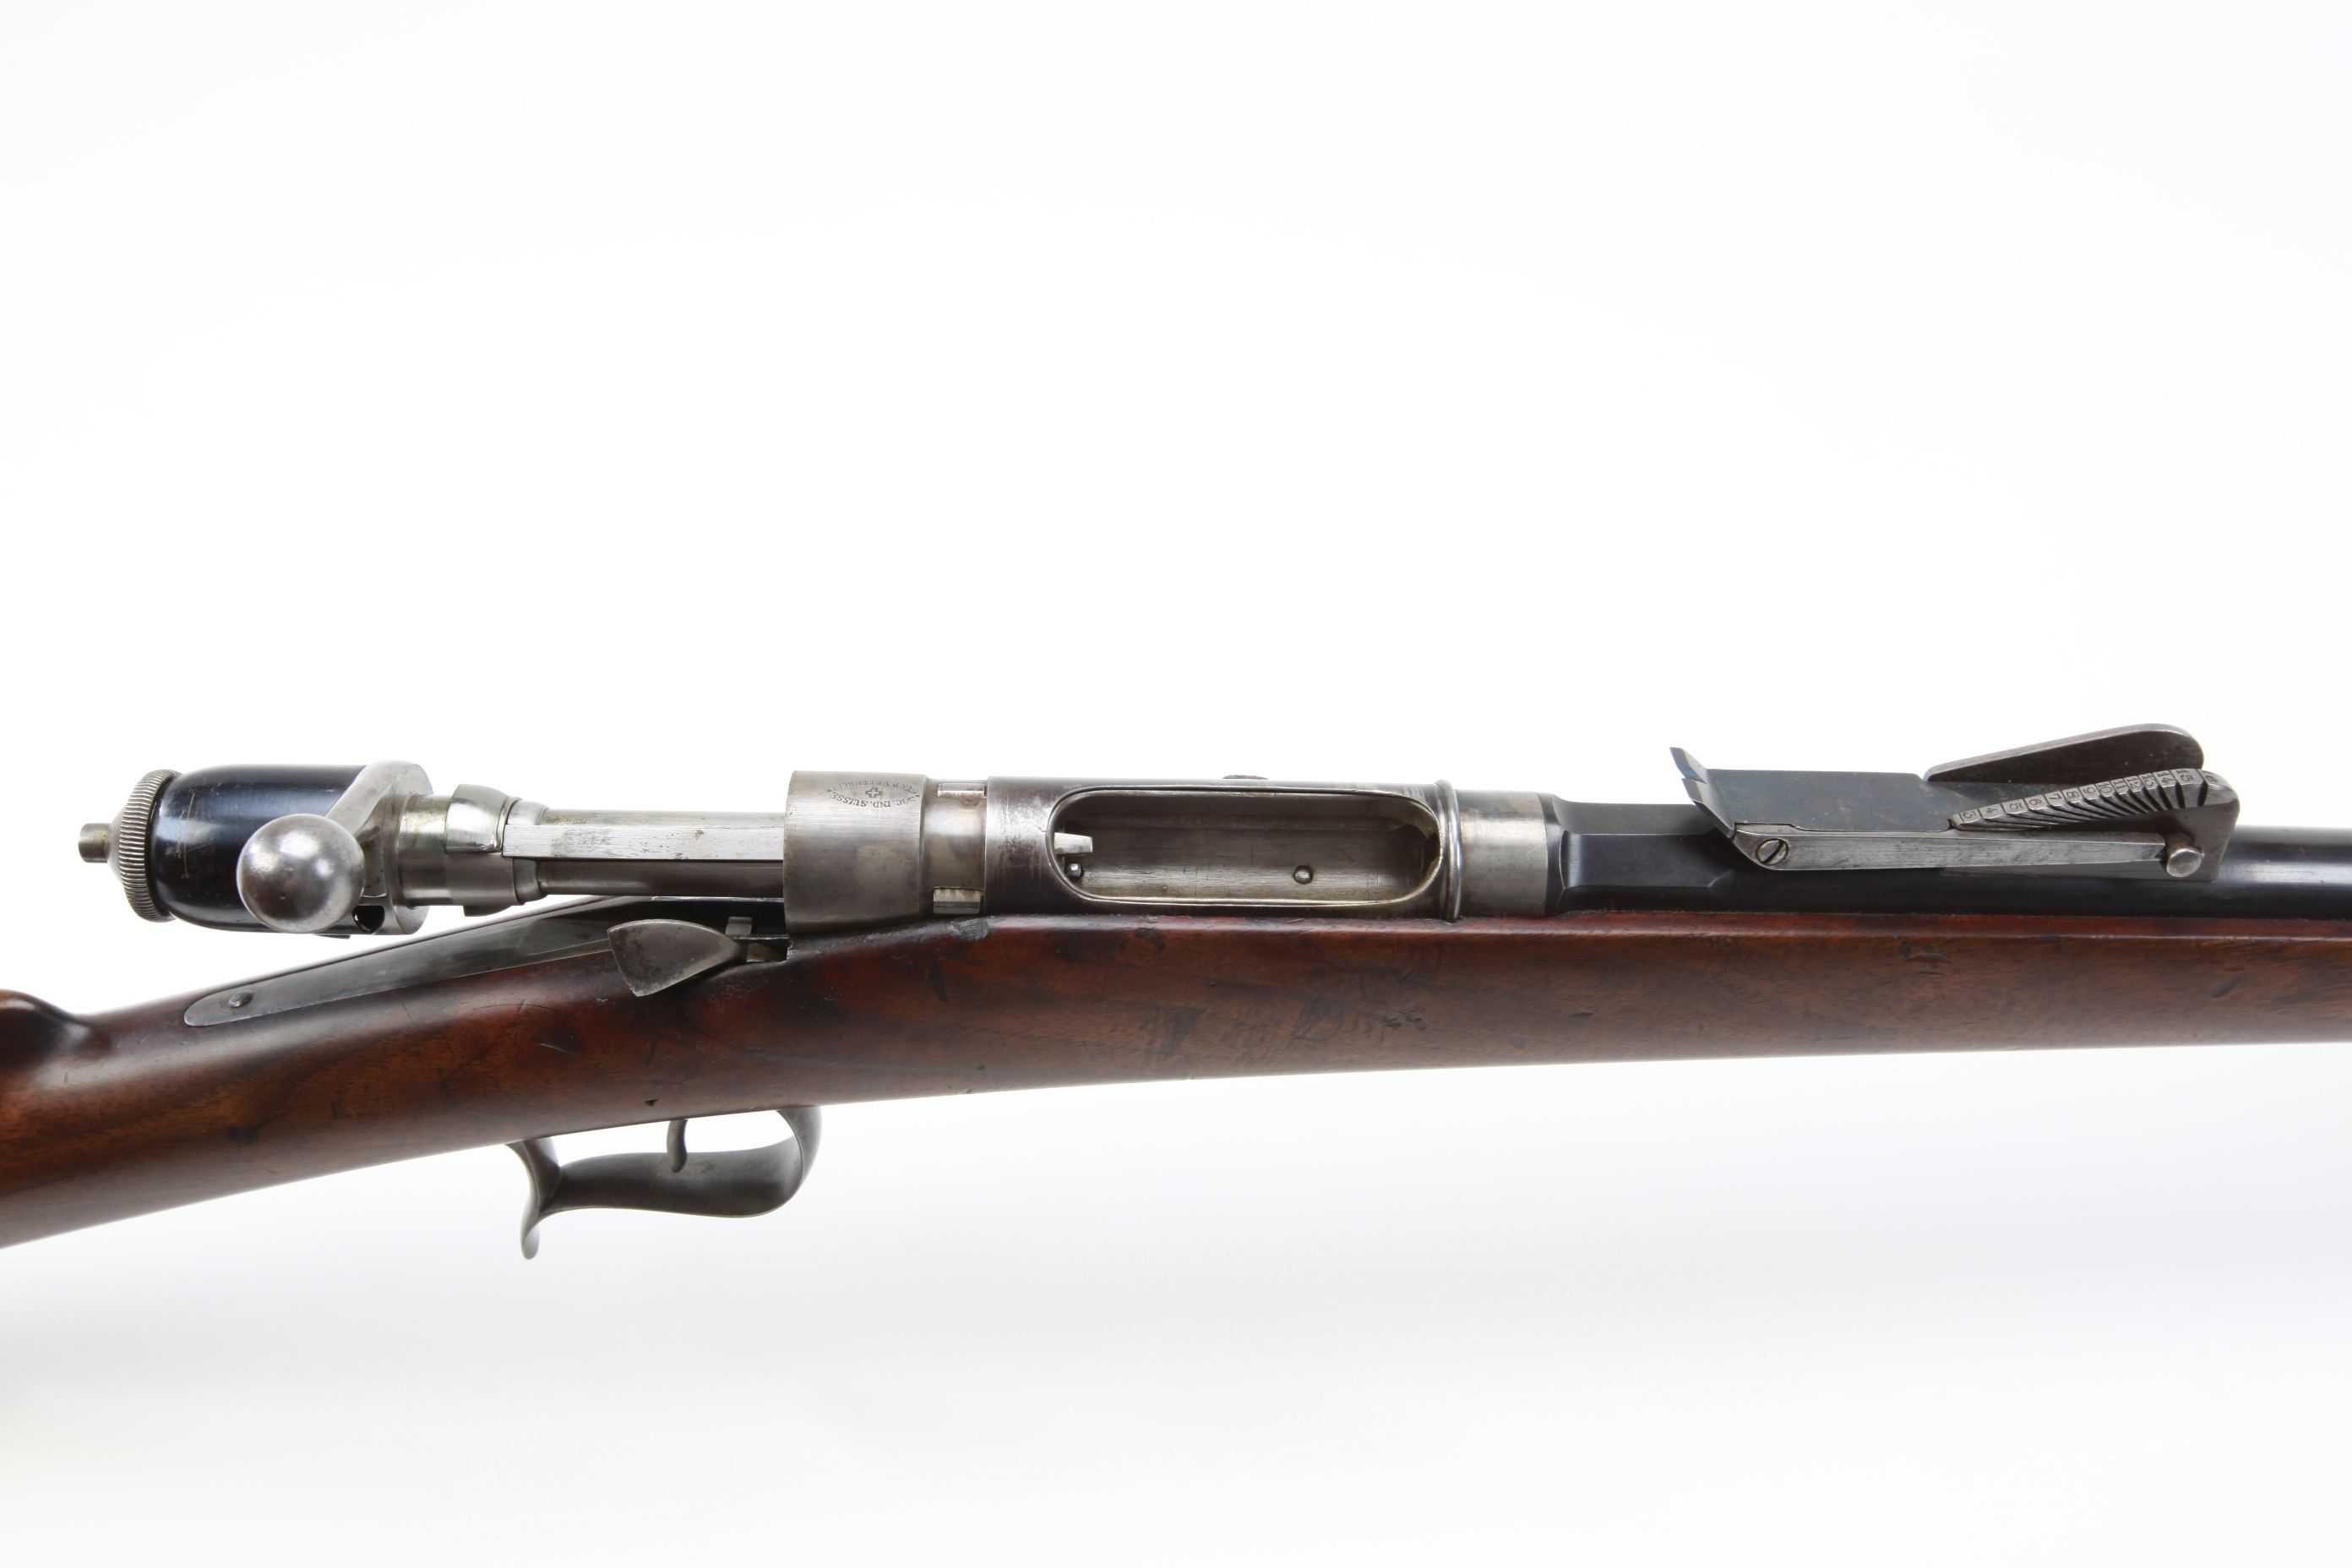 Societe Industrial Suisse Model 1871 Vetterli Bolt Action Rifle